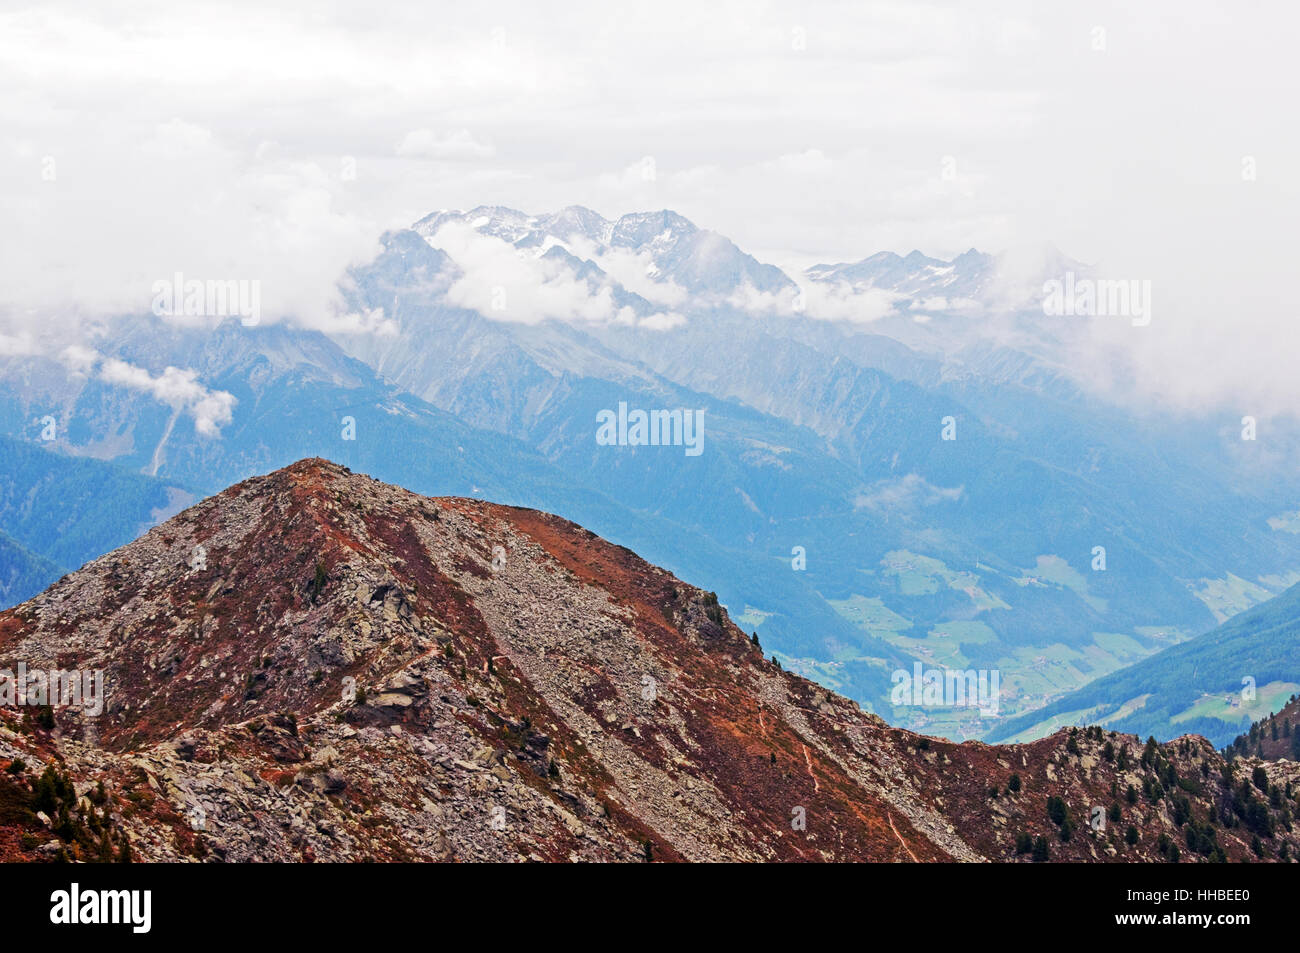 Valle Aurina and Zillertal Alps from the hiking trails of Speikboden area, near Campo Tures, Italy Stock Photo